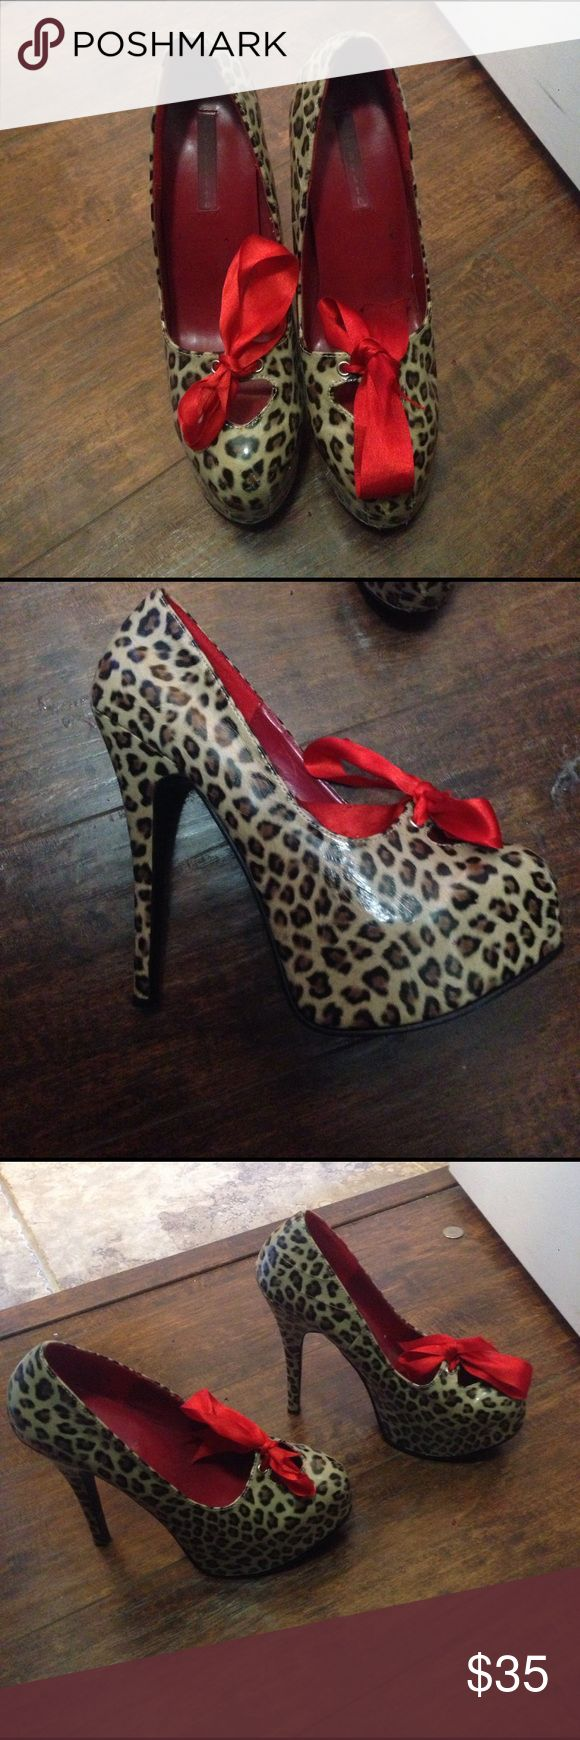 Cute leopard heels with red ribbon bow High hells adorable Shoes Heels